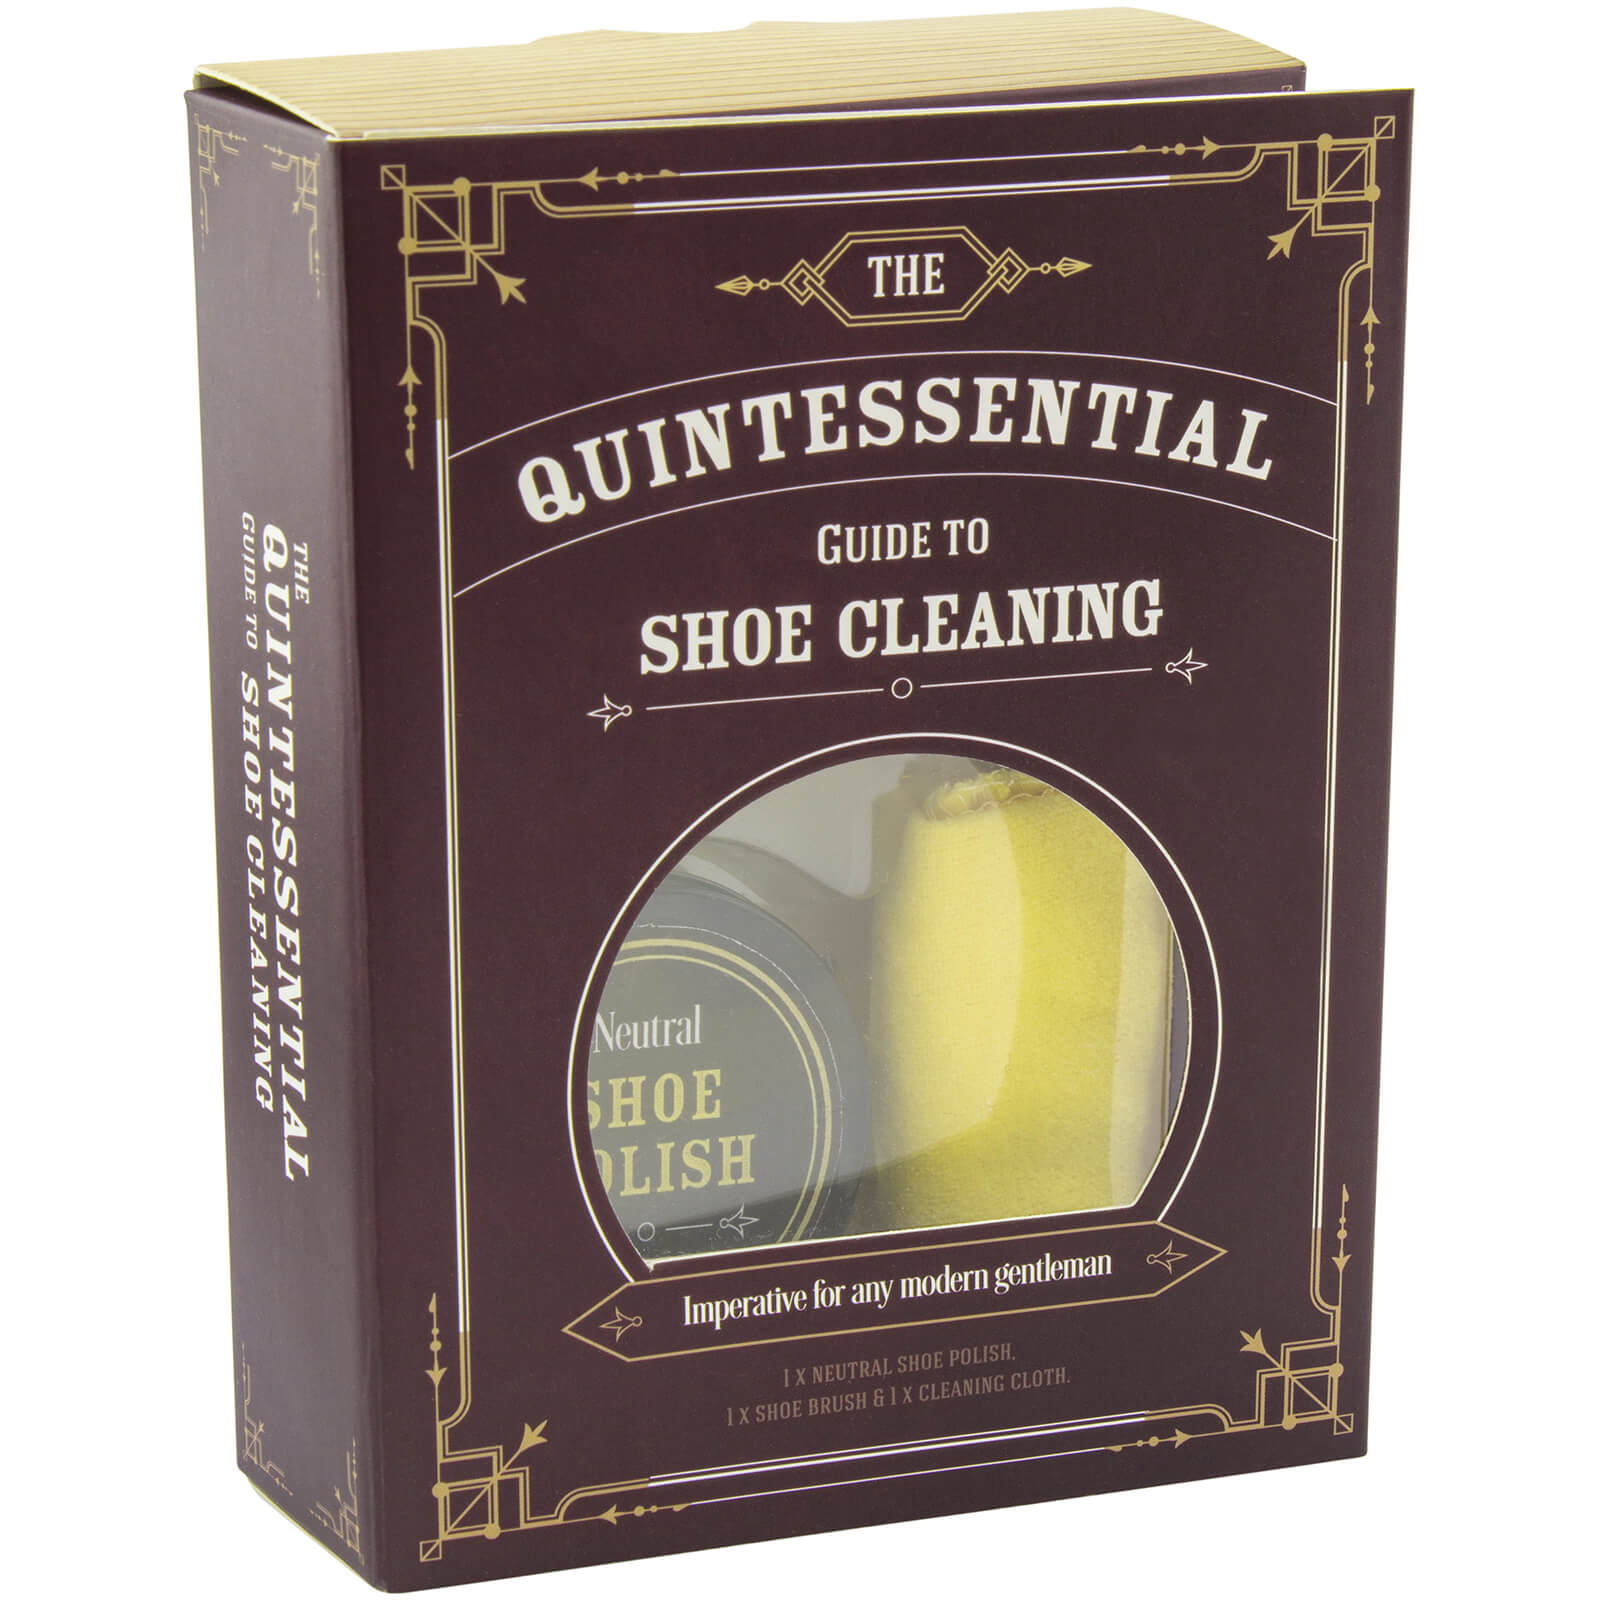 Image of Shoe Ceaning Kit Book